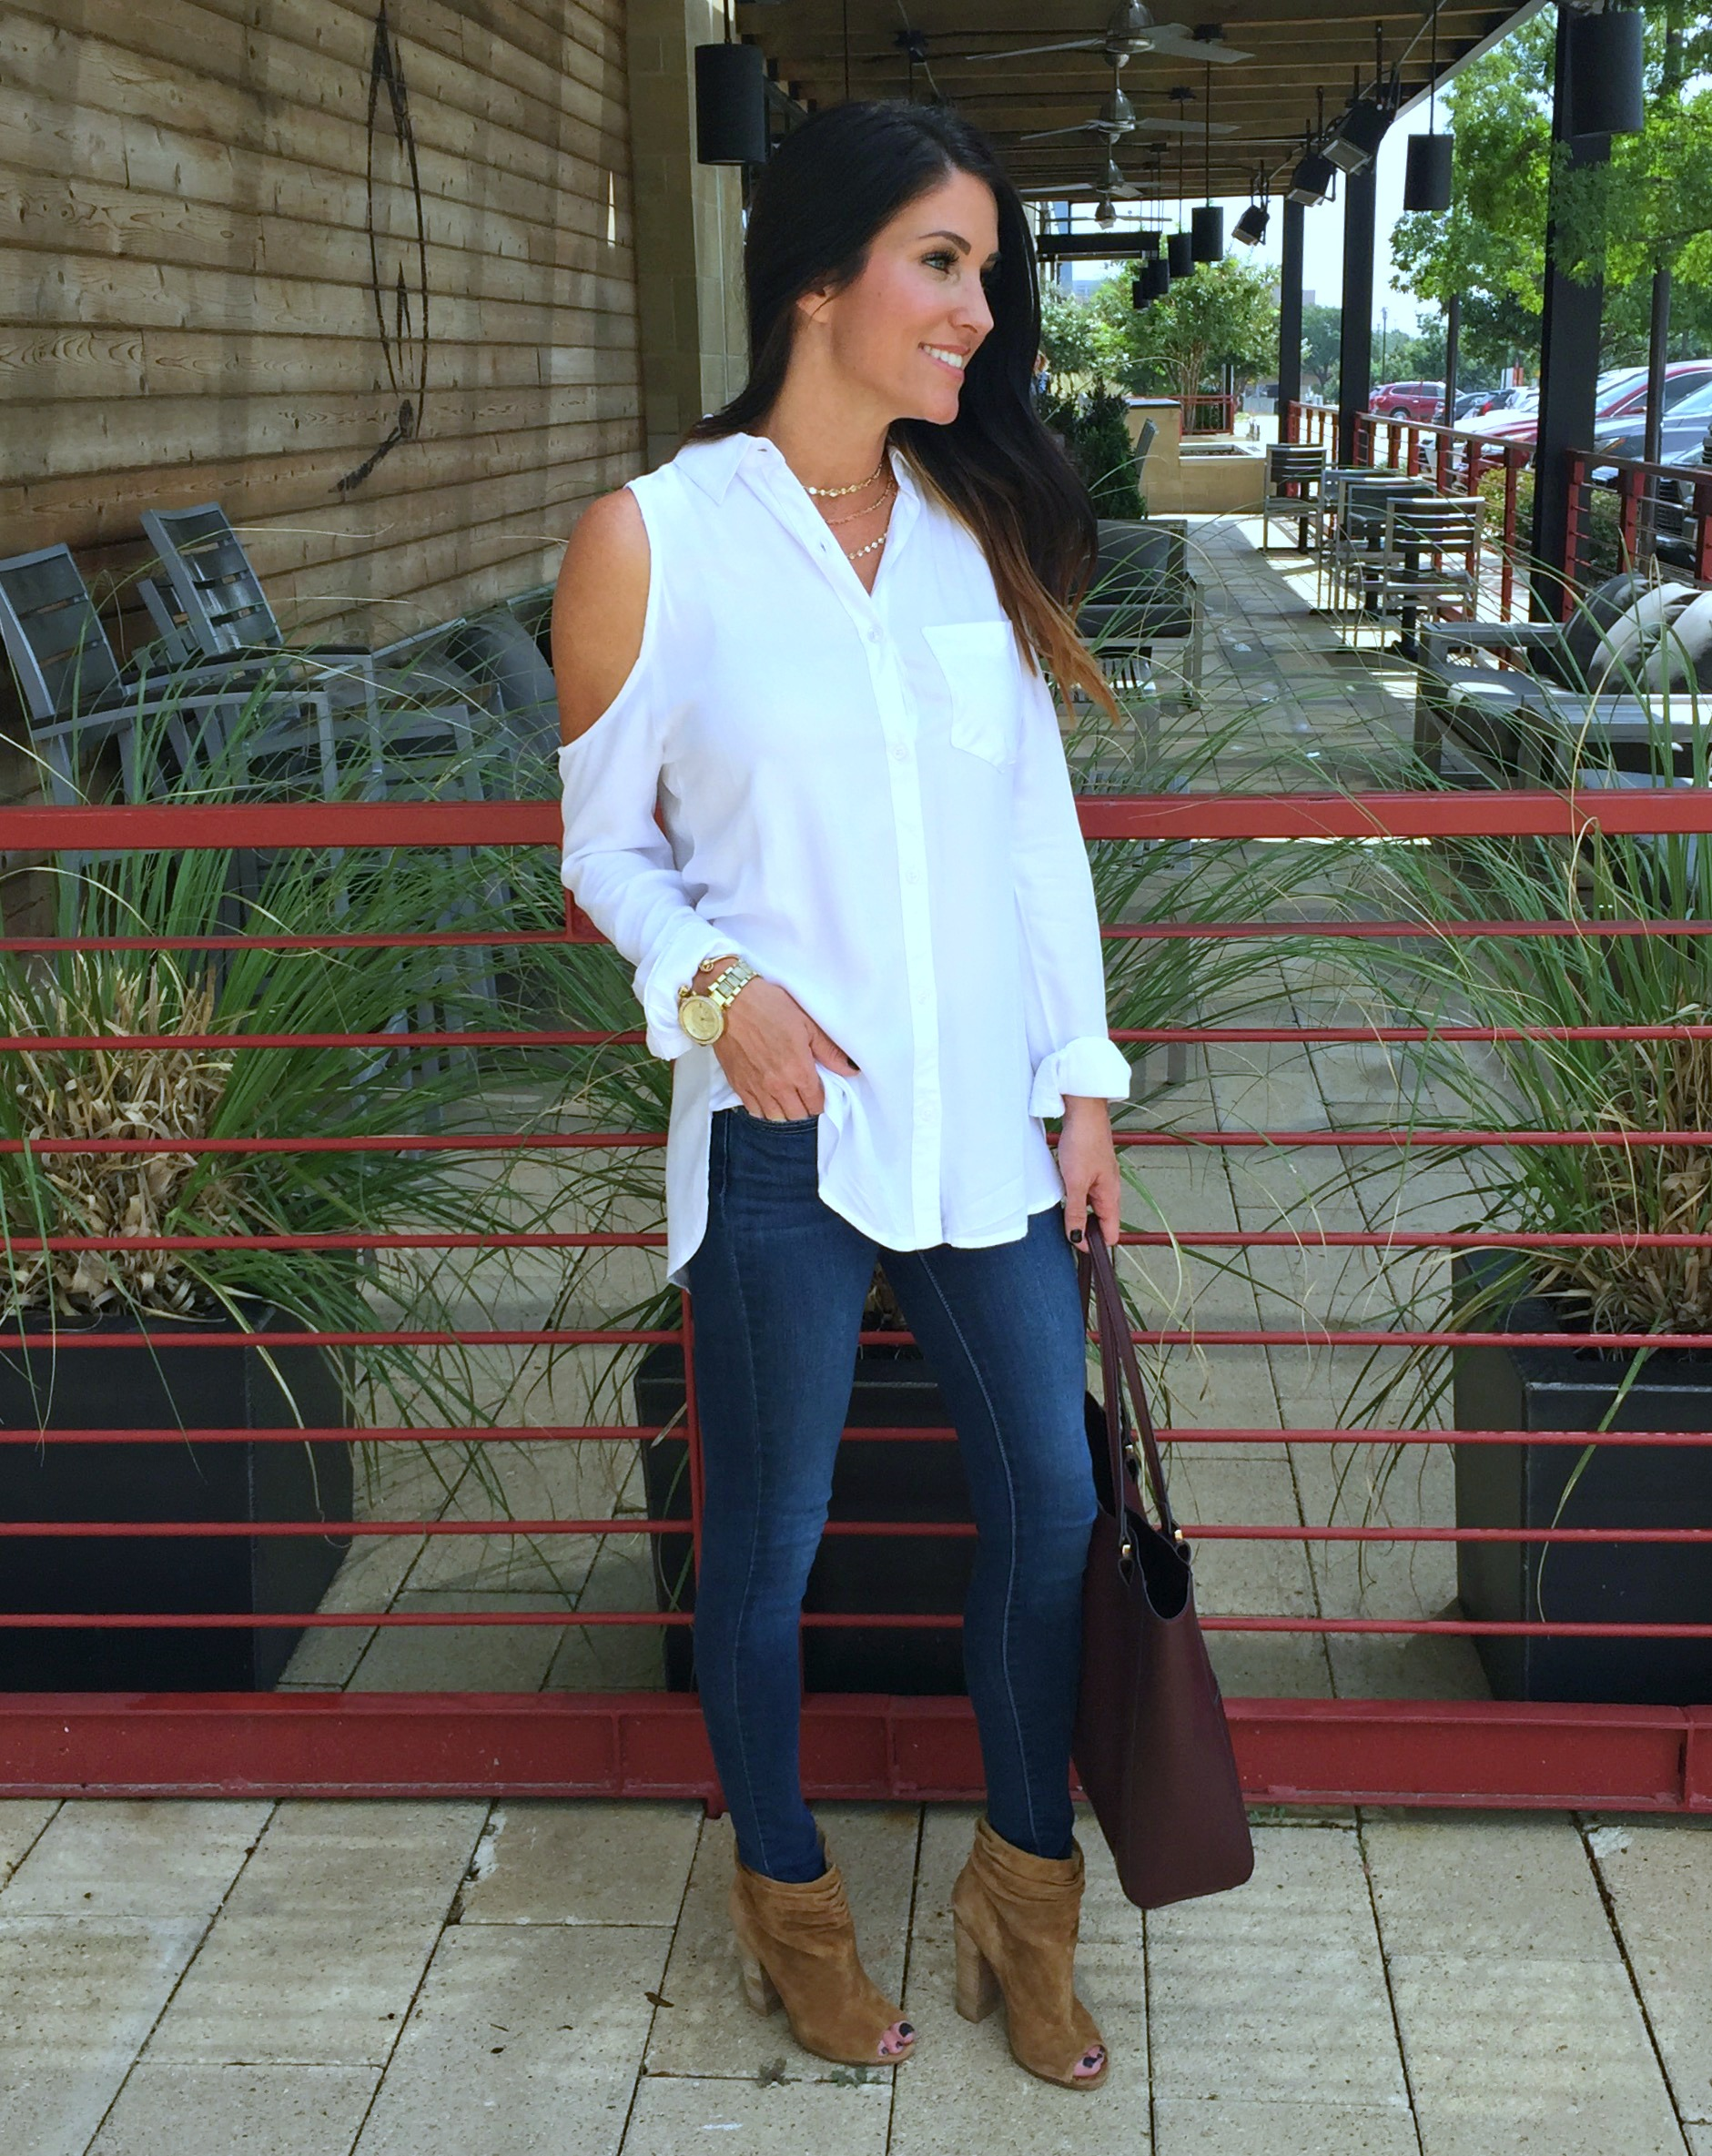 Cold Shoulder Top, Dark jeans, brown booties